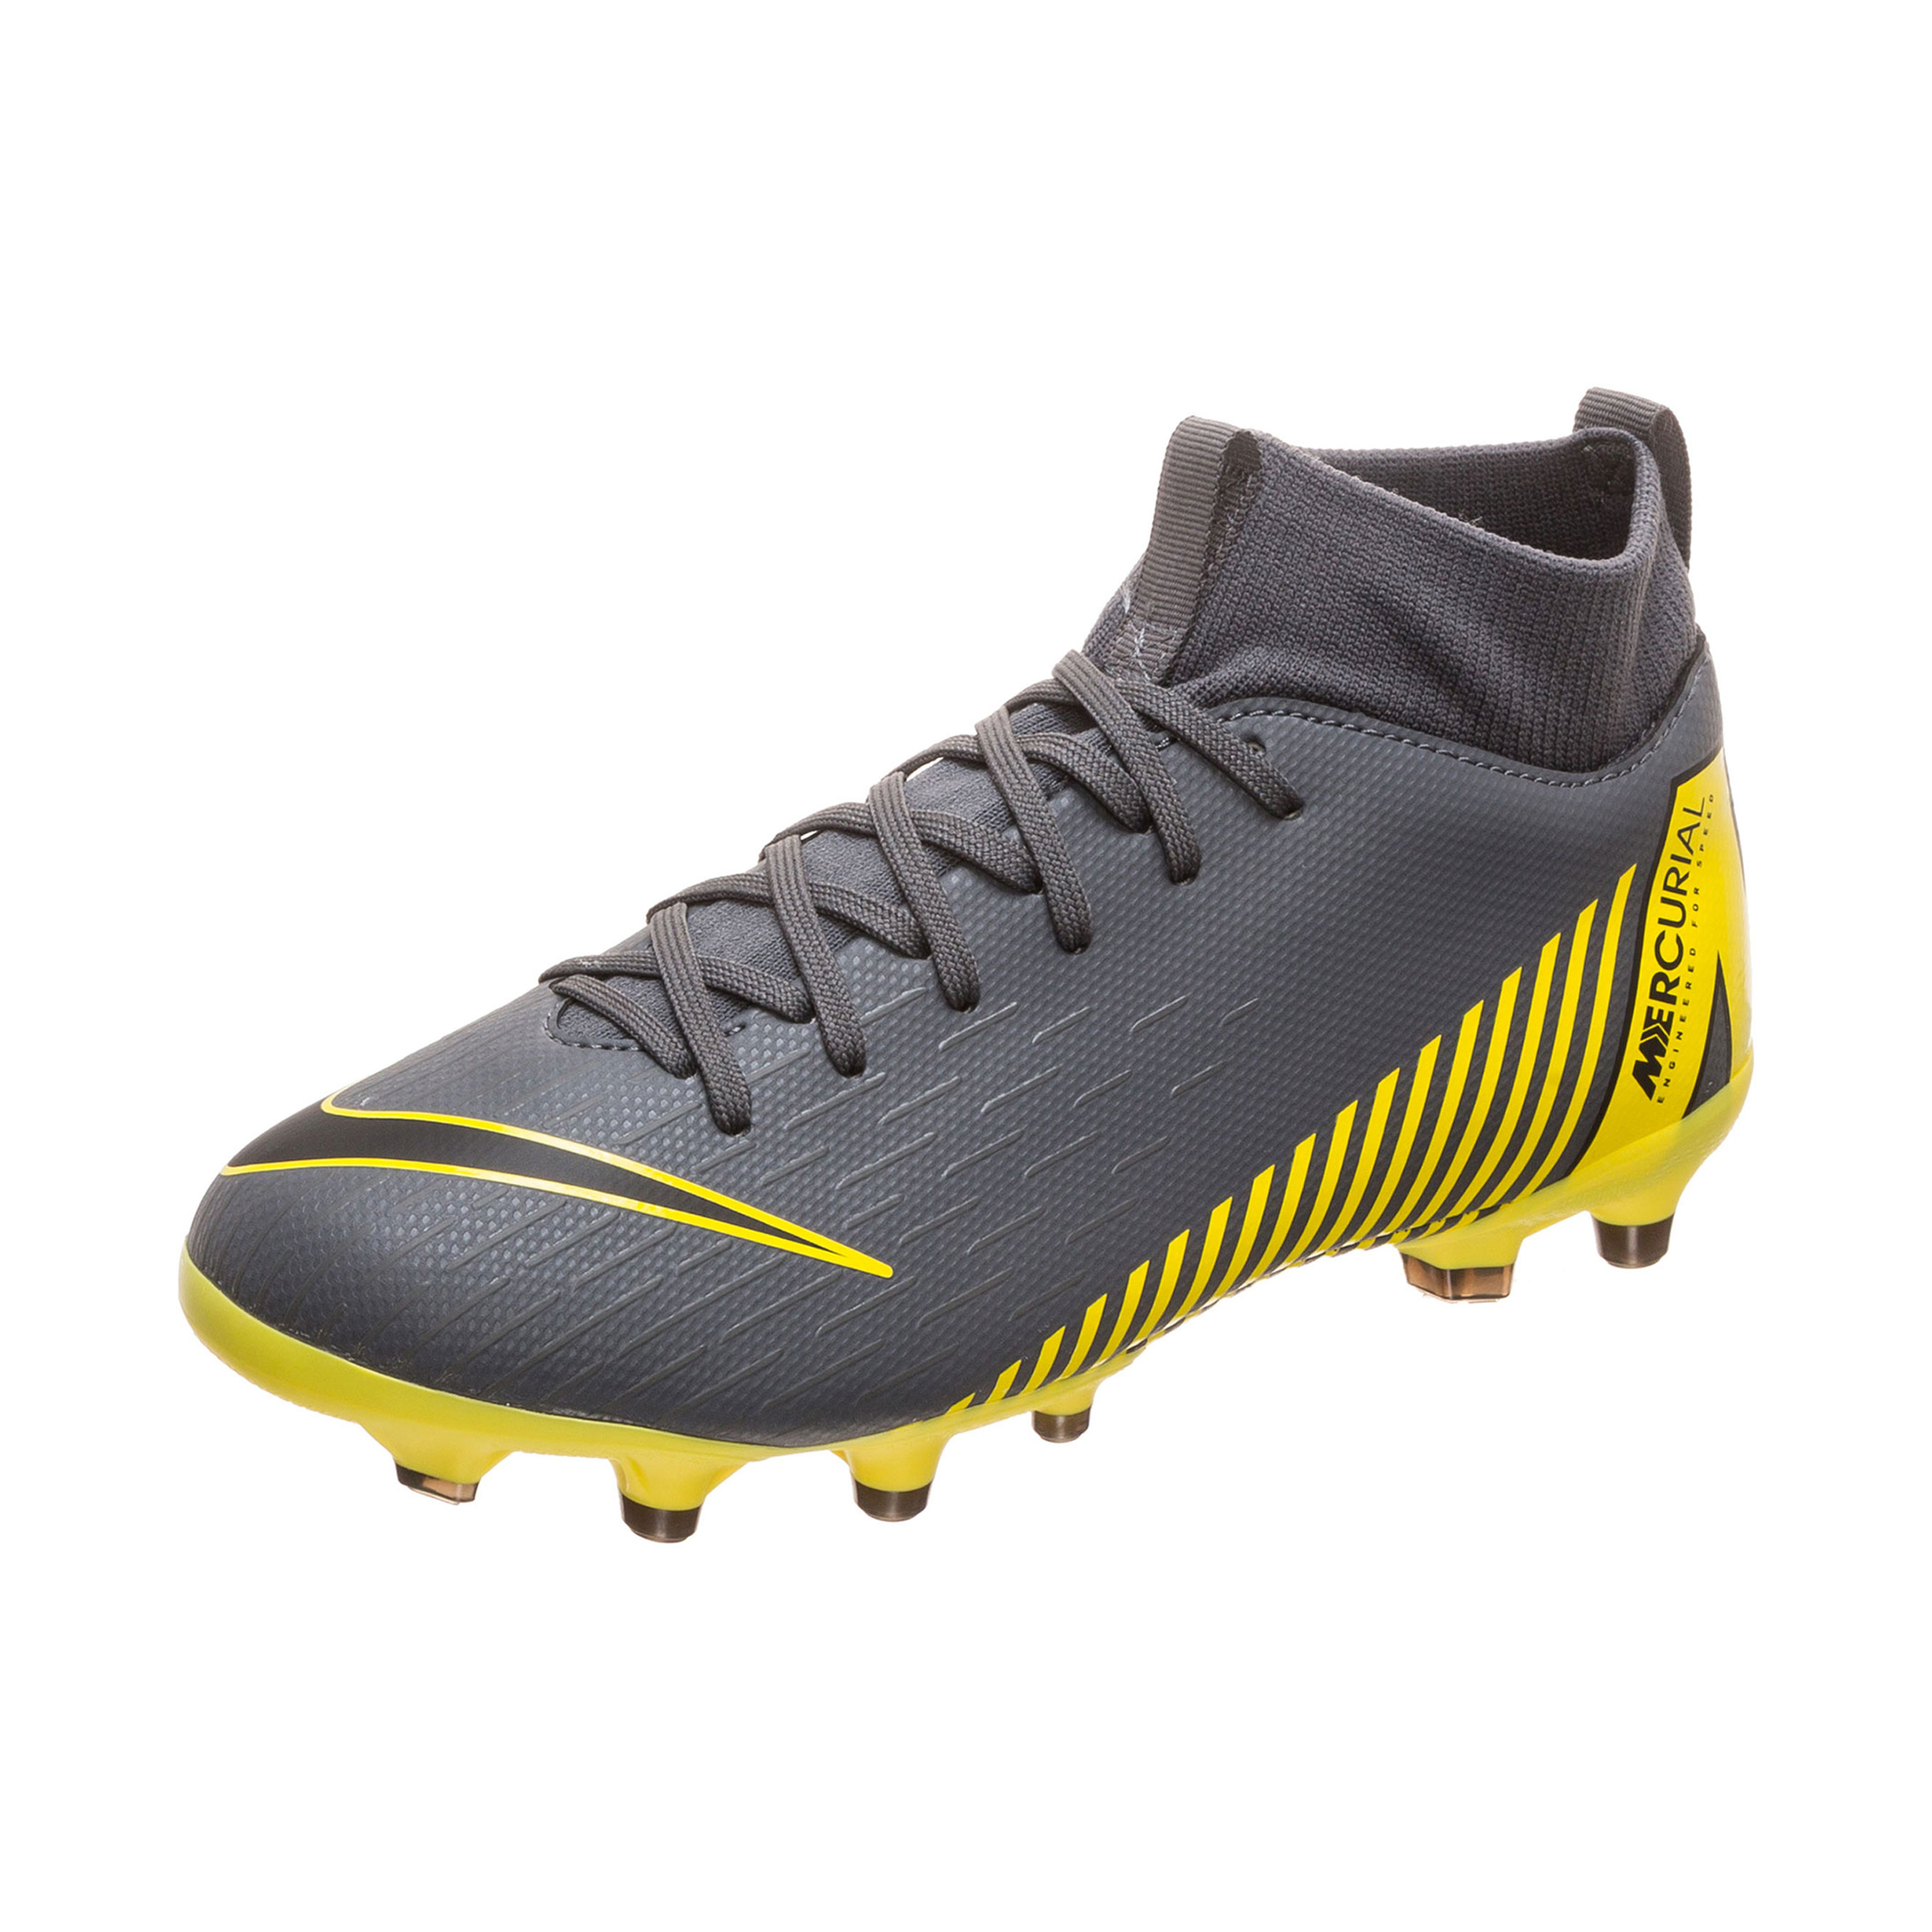 buy popular 1b9a0 c93a8 Kylian Mbappe Football Boots | Nike Mercurial Superfly